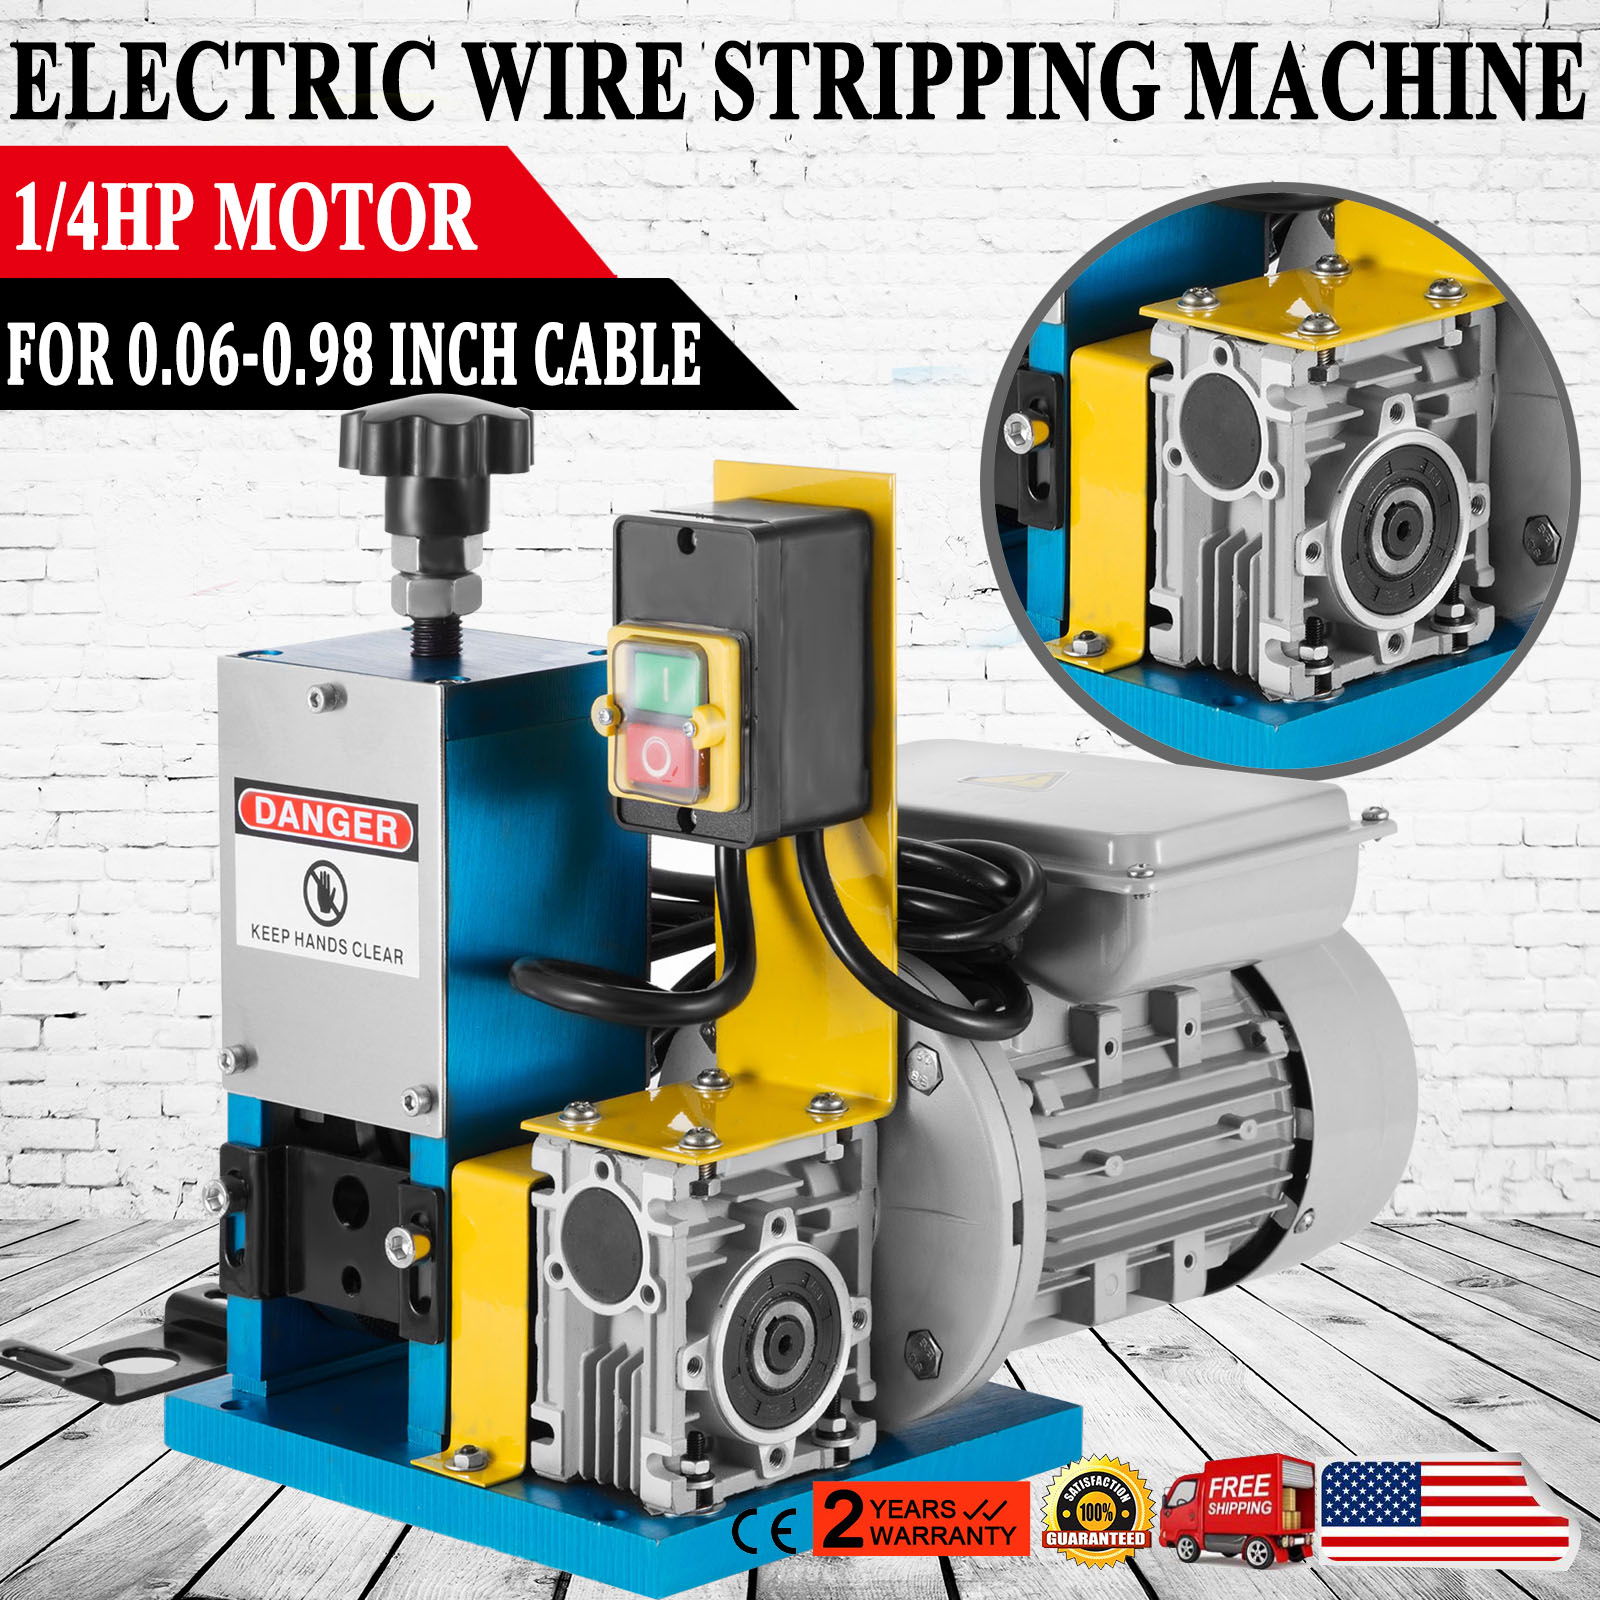 1//4HP Electric// Manual Wire Stripping Machine Portable Comercial Cable Stripper